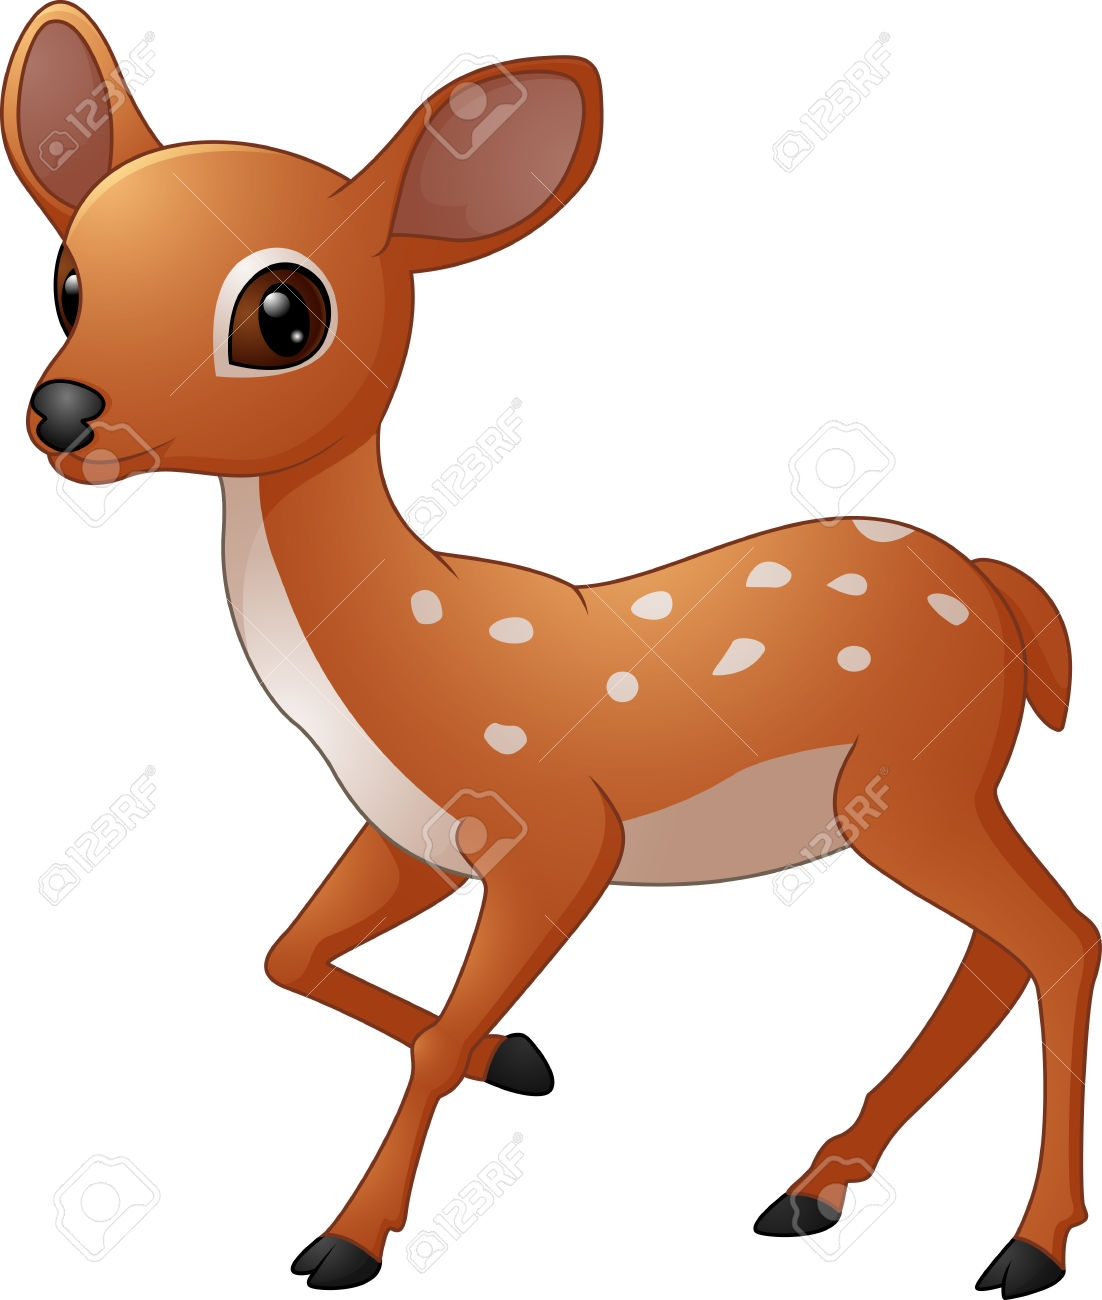 Mouse deer clipart.